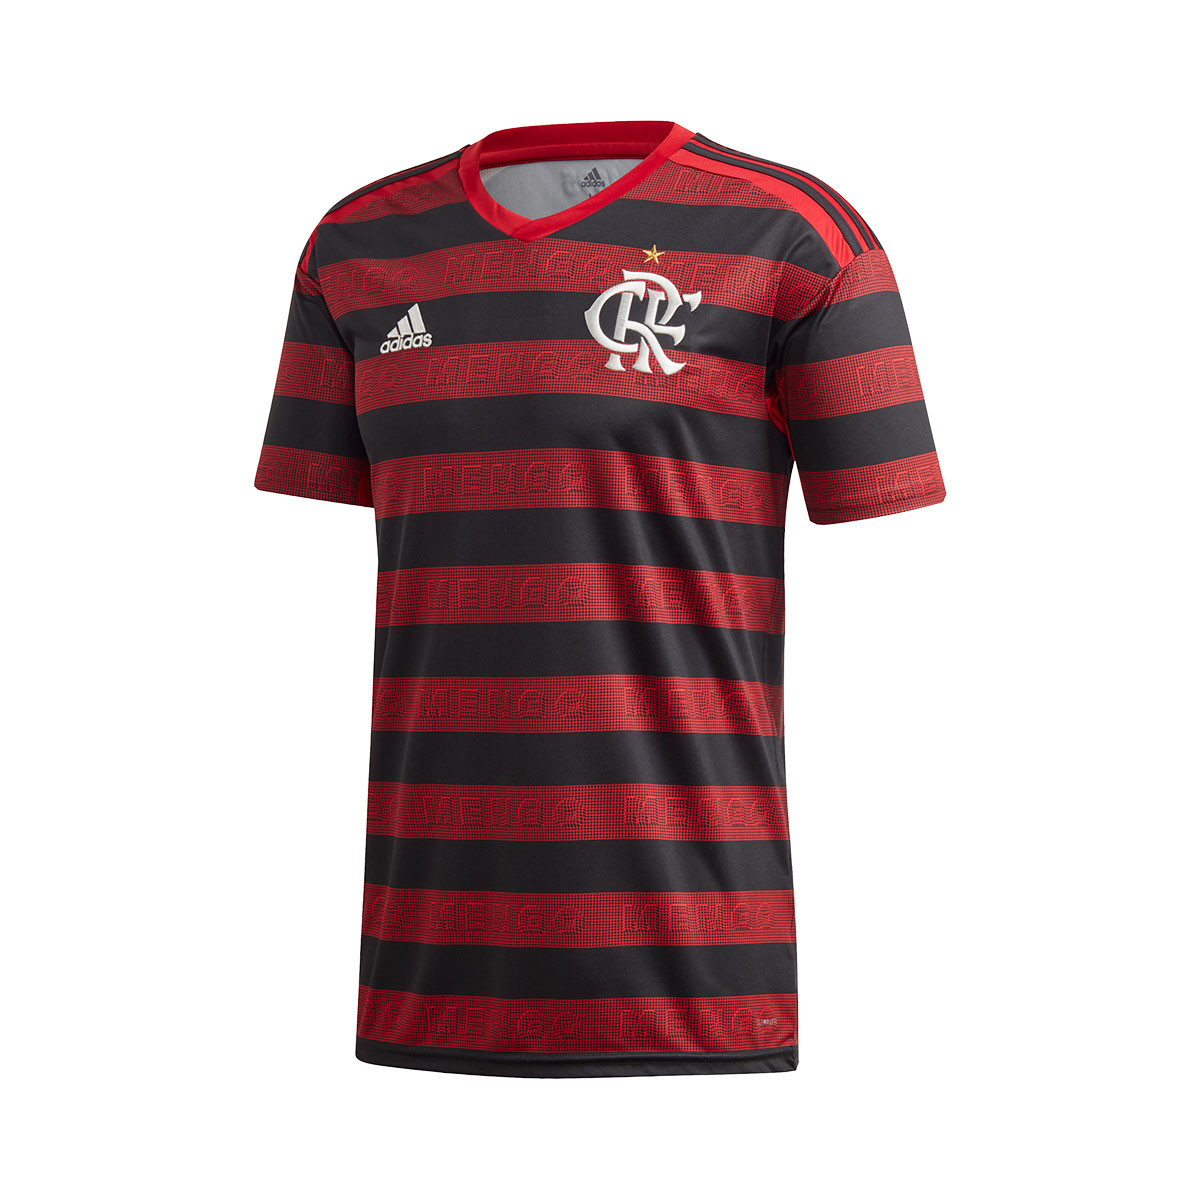 Camisa Chile Home 20192020